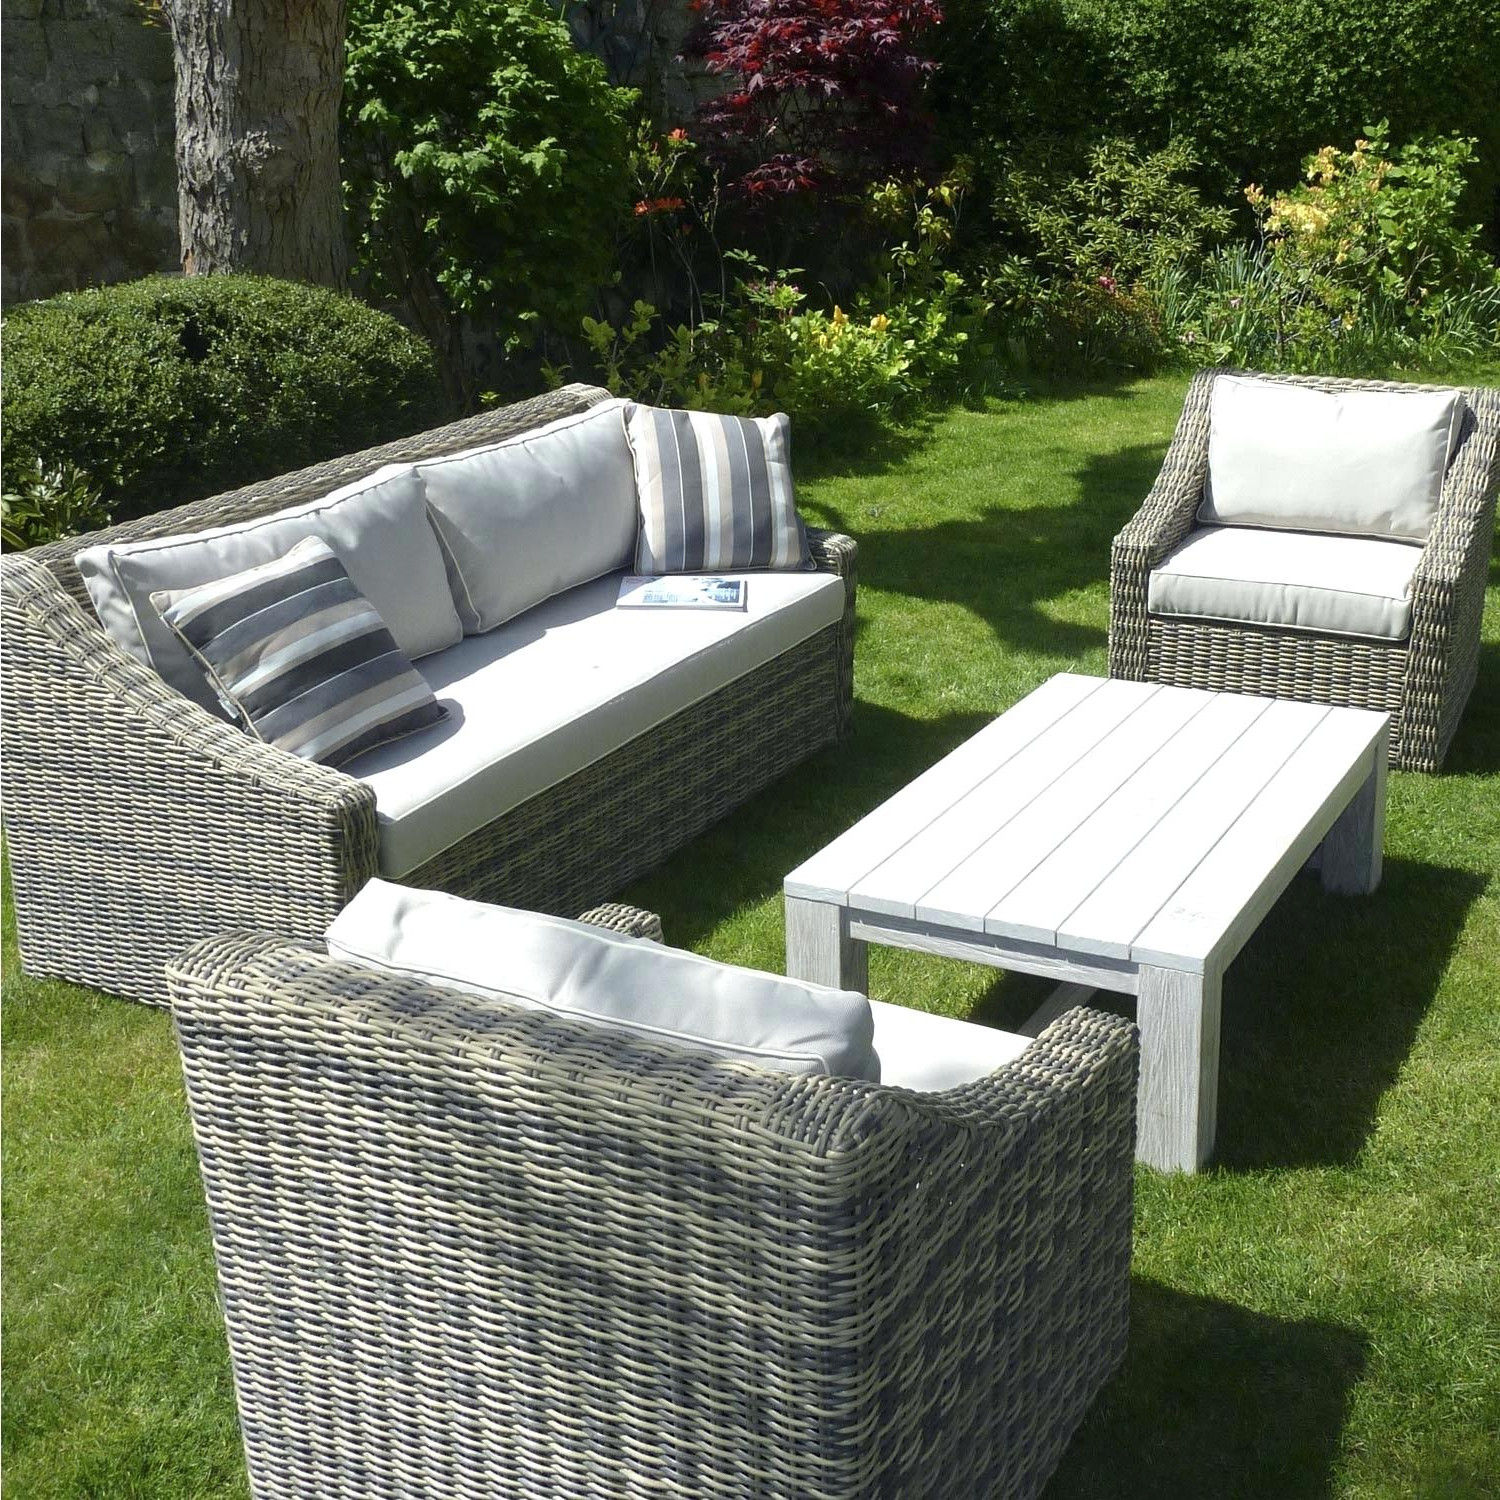 salon de jardin carrefour venissieux jardin piscine et. Black Bedroom Furniture Sets. Home Design Ideas